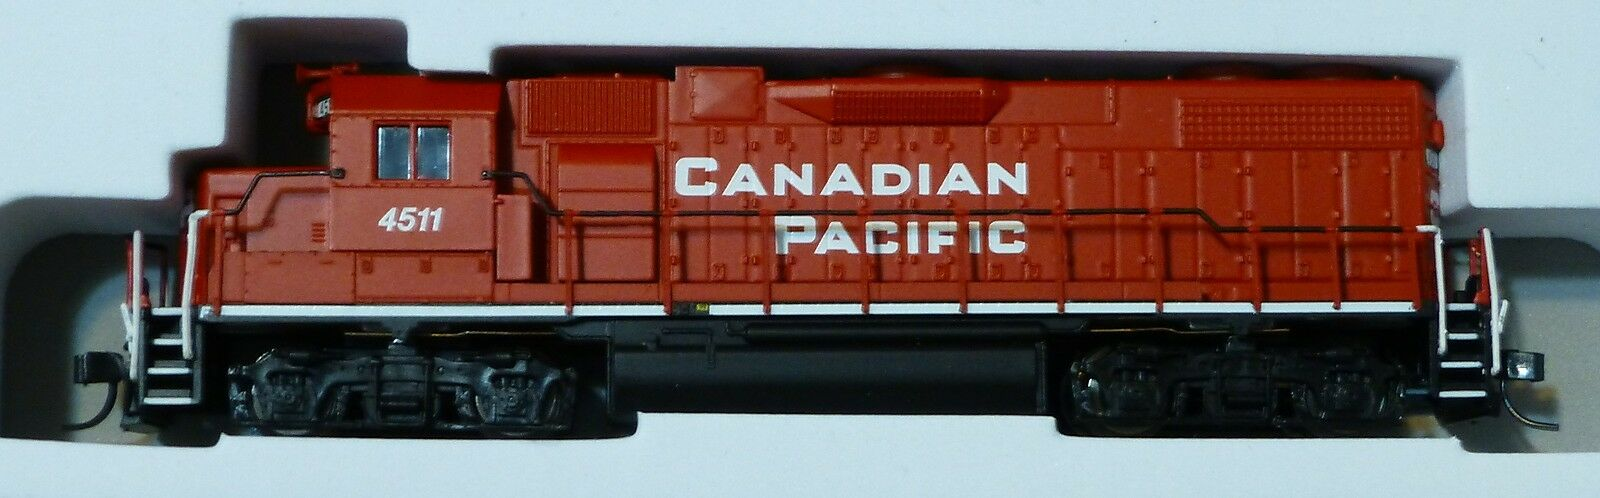 Atlas N EMD GP38-2 w Dynamic Brakes - Canadian Pacific Pacific Pacific (DCC) NCE bd74b8